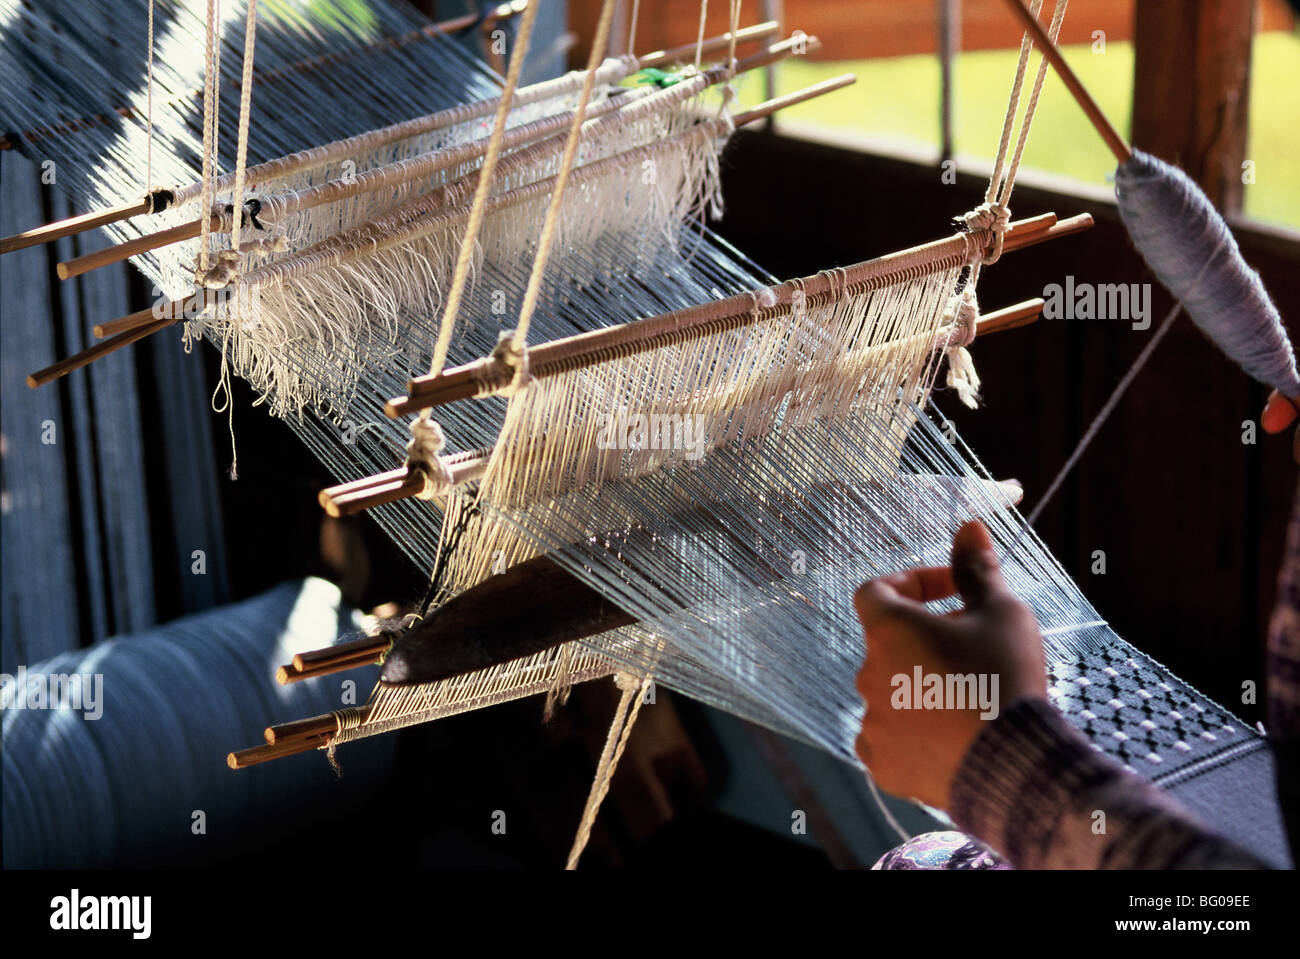 Weaving cotton fabrics on a traditional multiple-harness frame loom, Inle Lake, Shan State, Myanmar (Burma), Asia - Stock Image